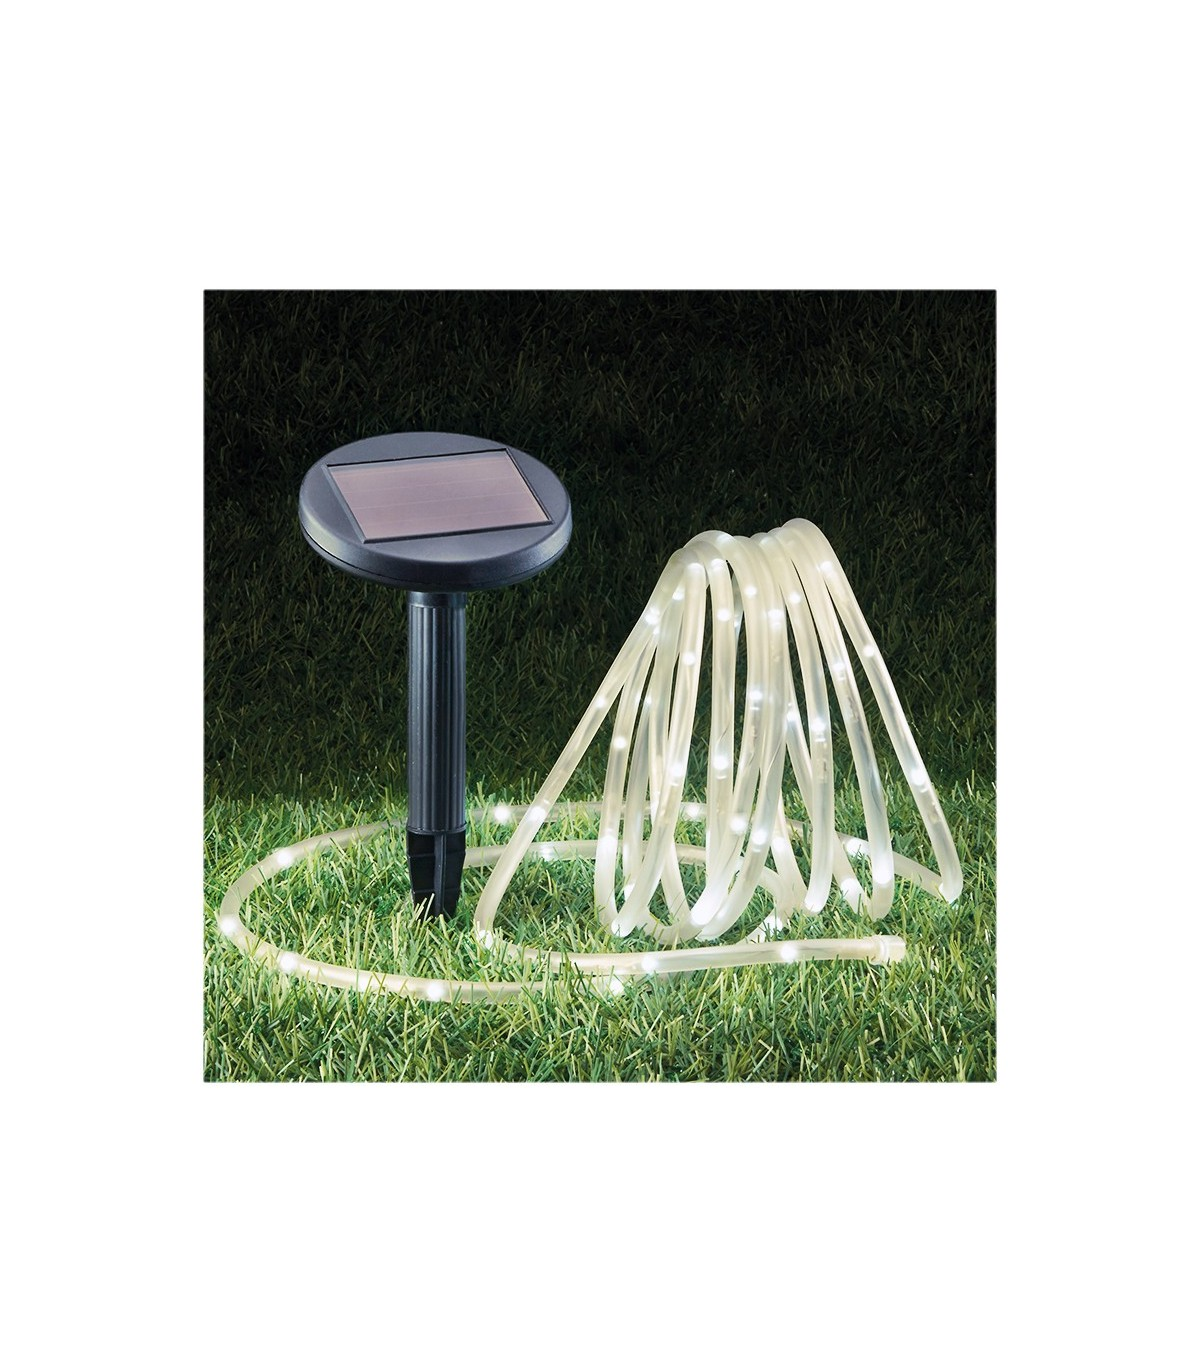 Image of: Outdoor Solar Best Led Strip Light 6m Future House Store